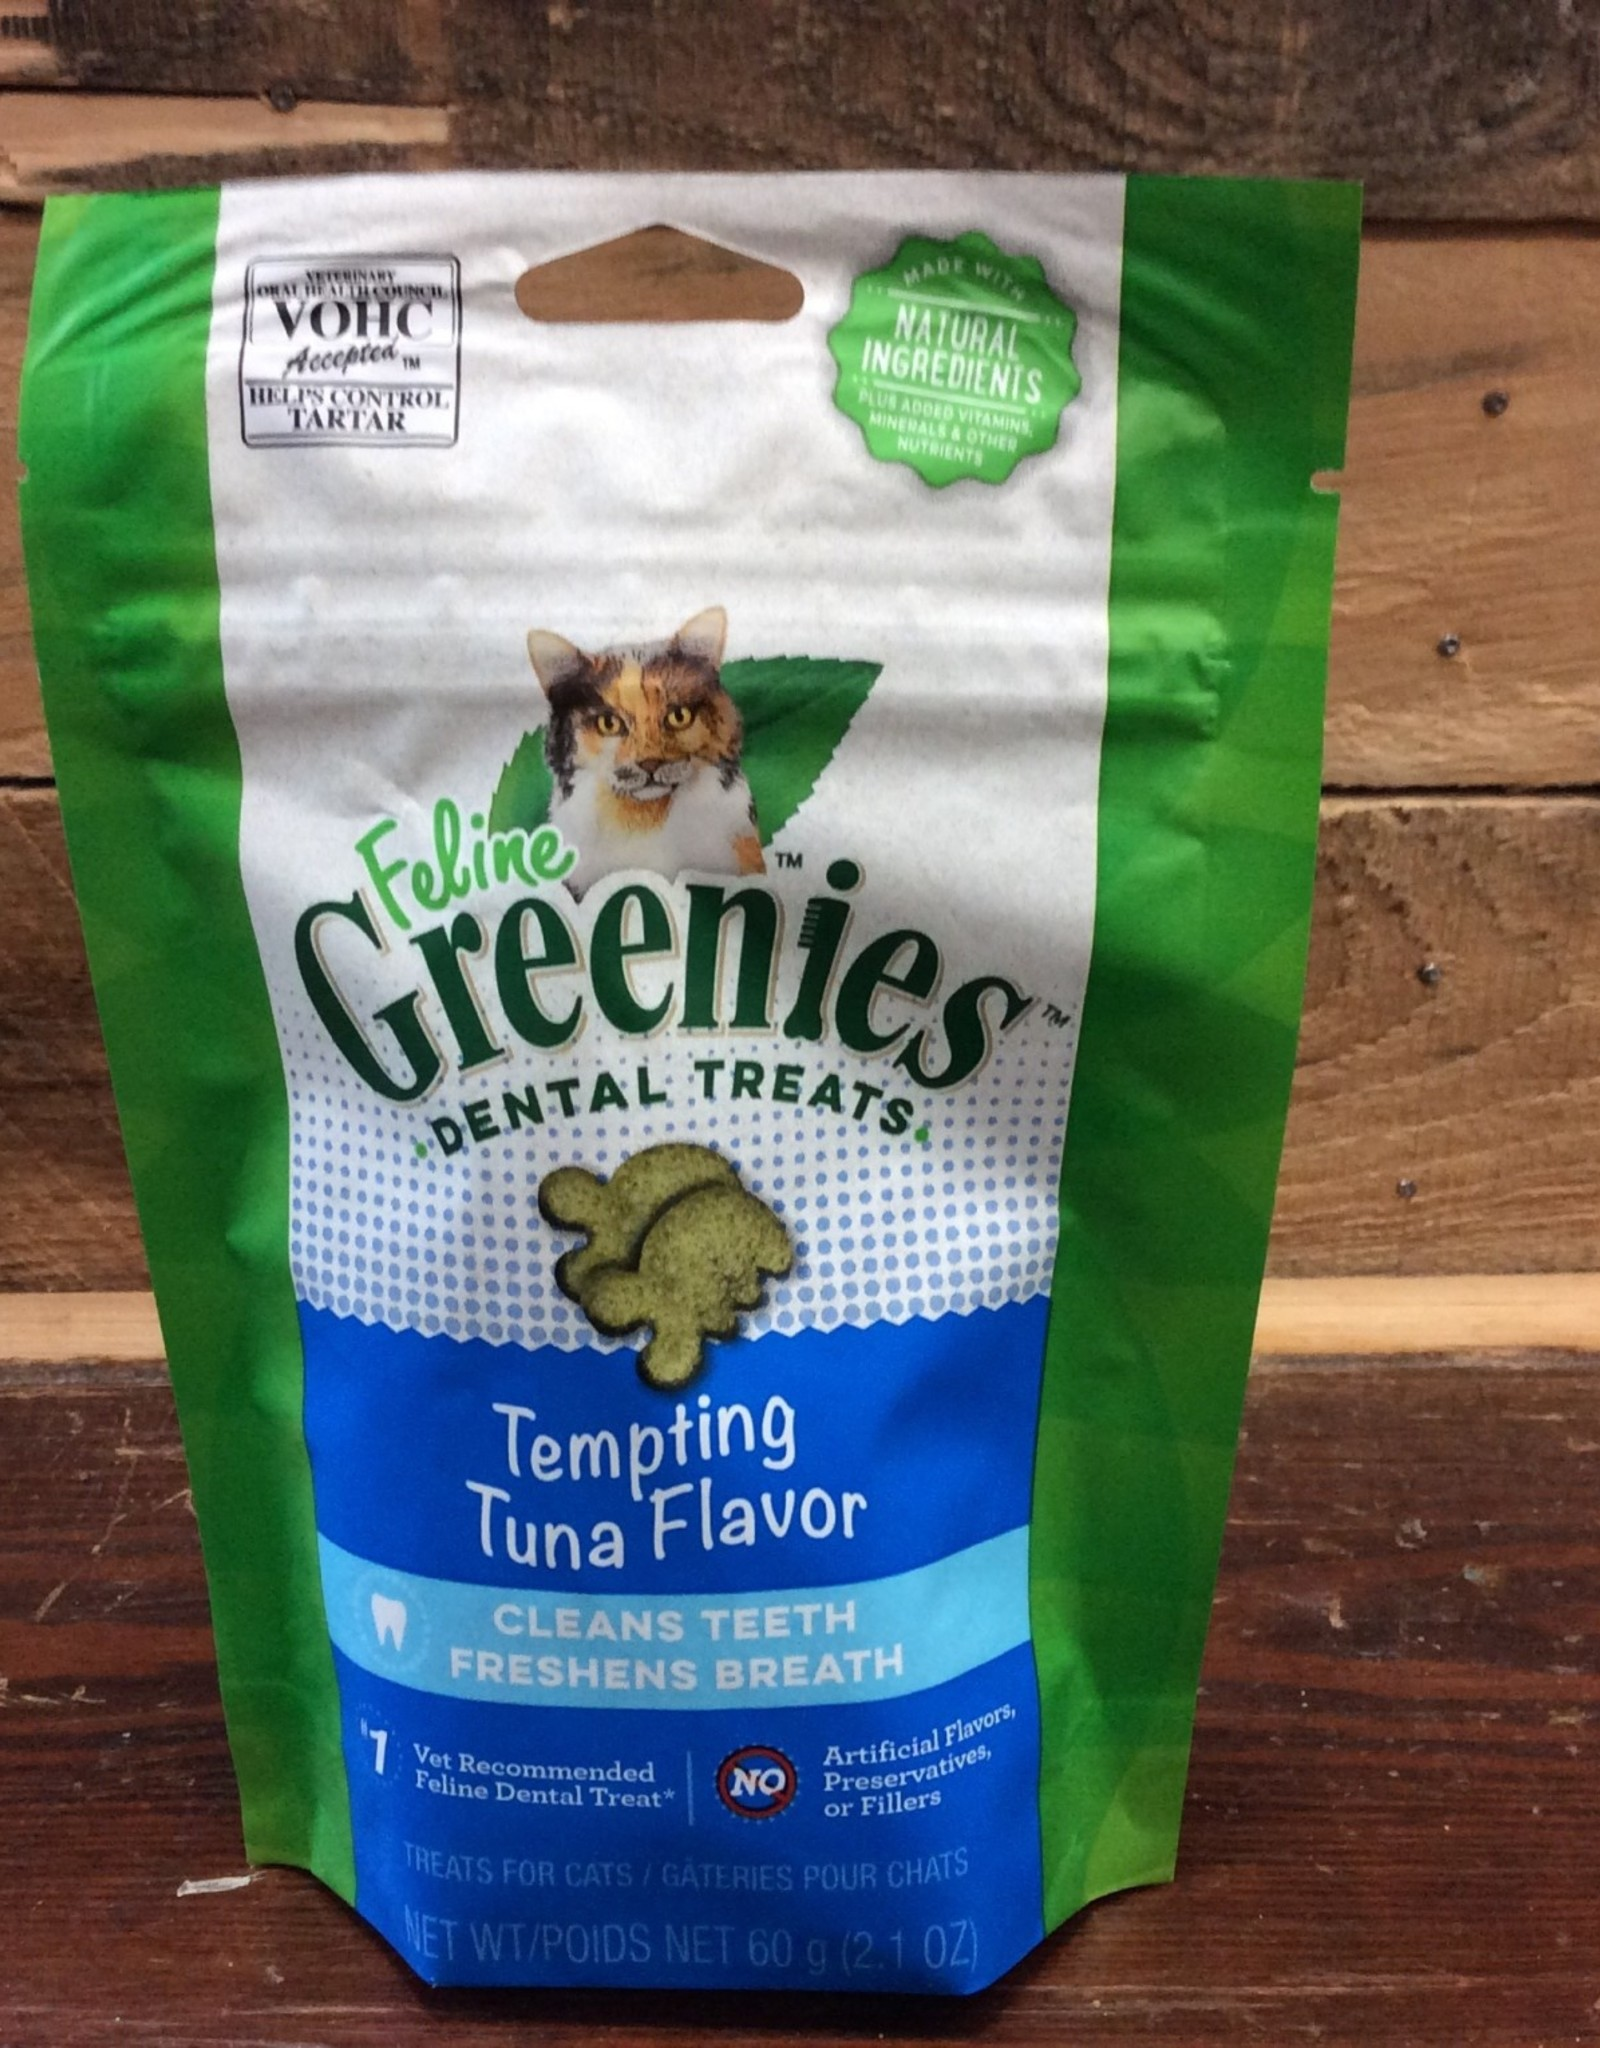 GREENIES Feline dental treat 2.1 oz tempting tuna